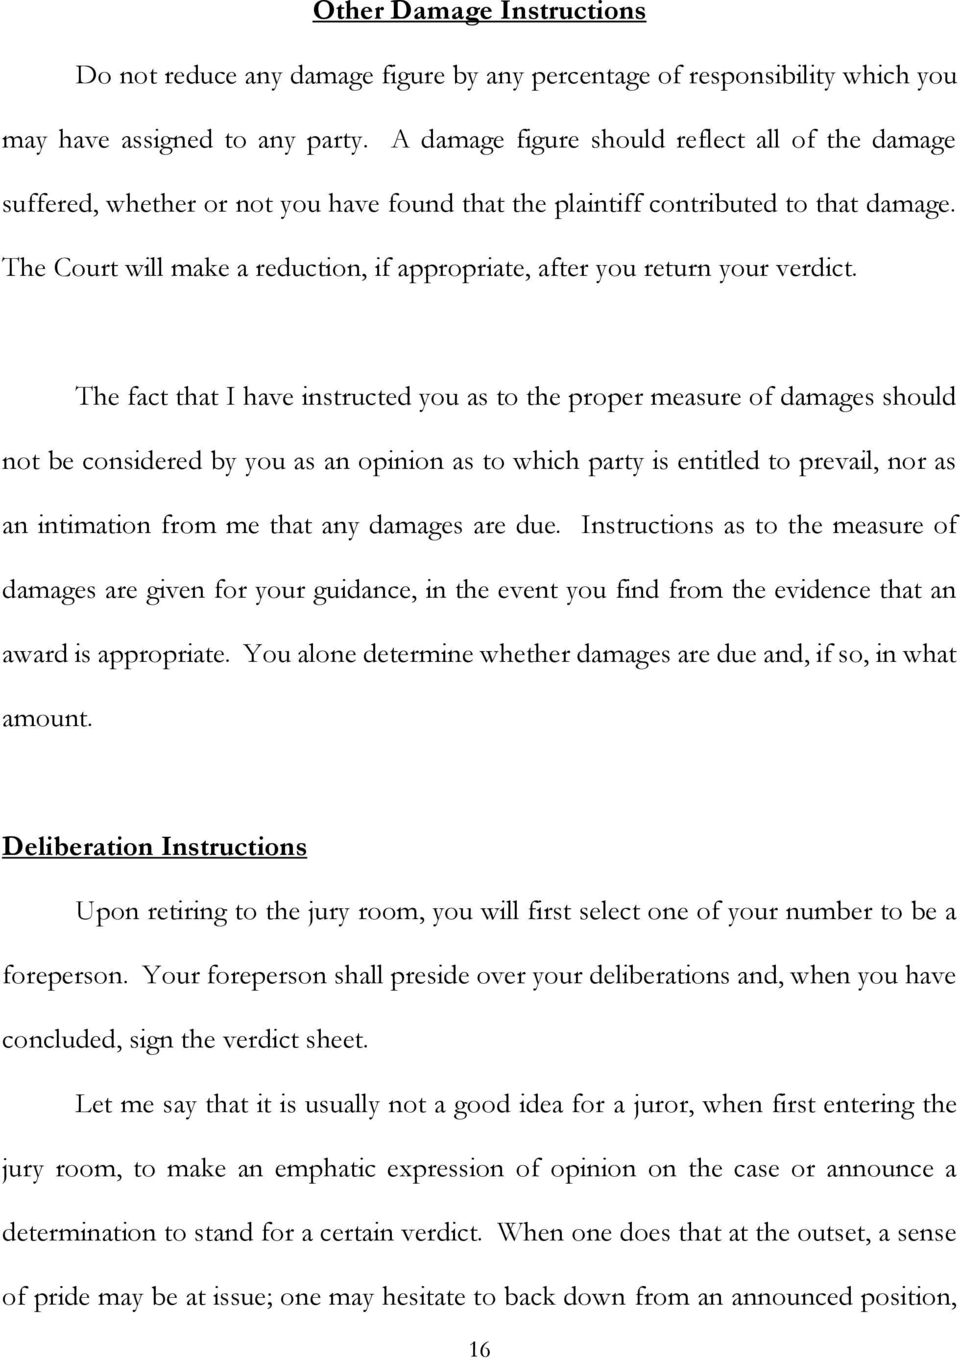 The Court will make a reduction, if appropriate, after you return your verdict.